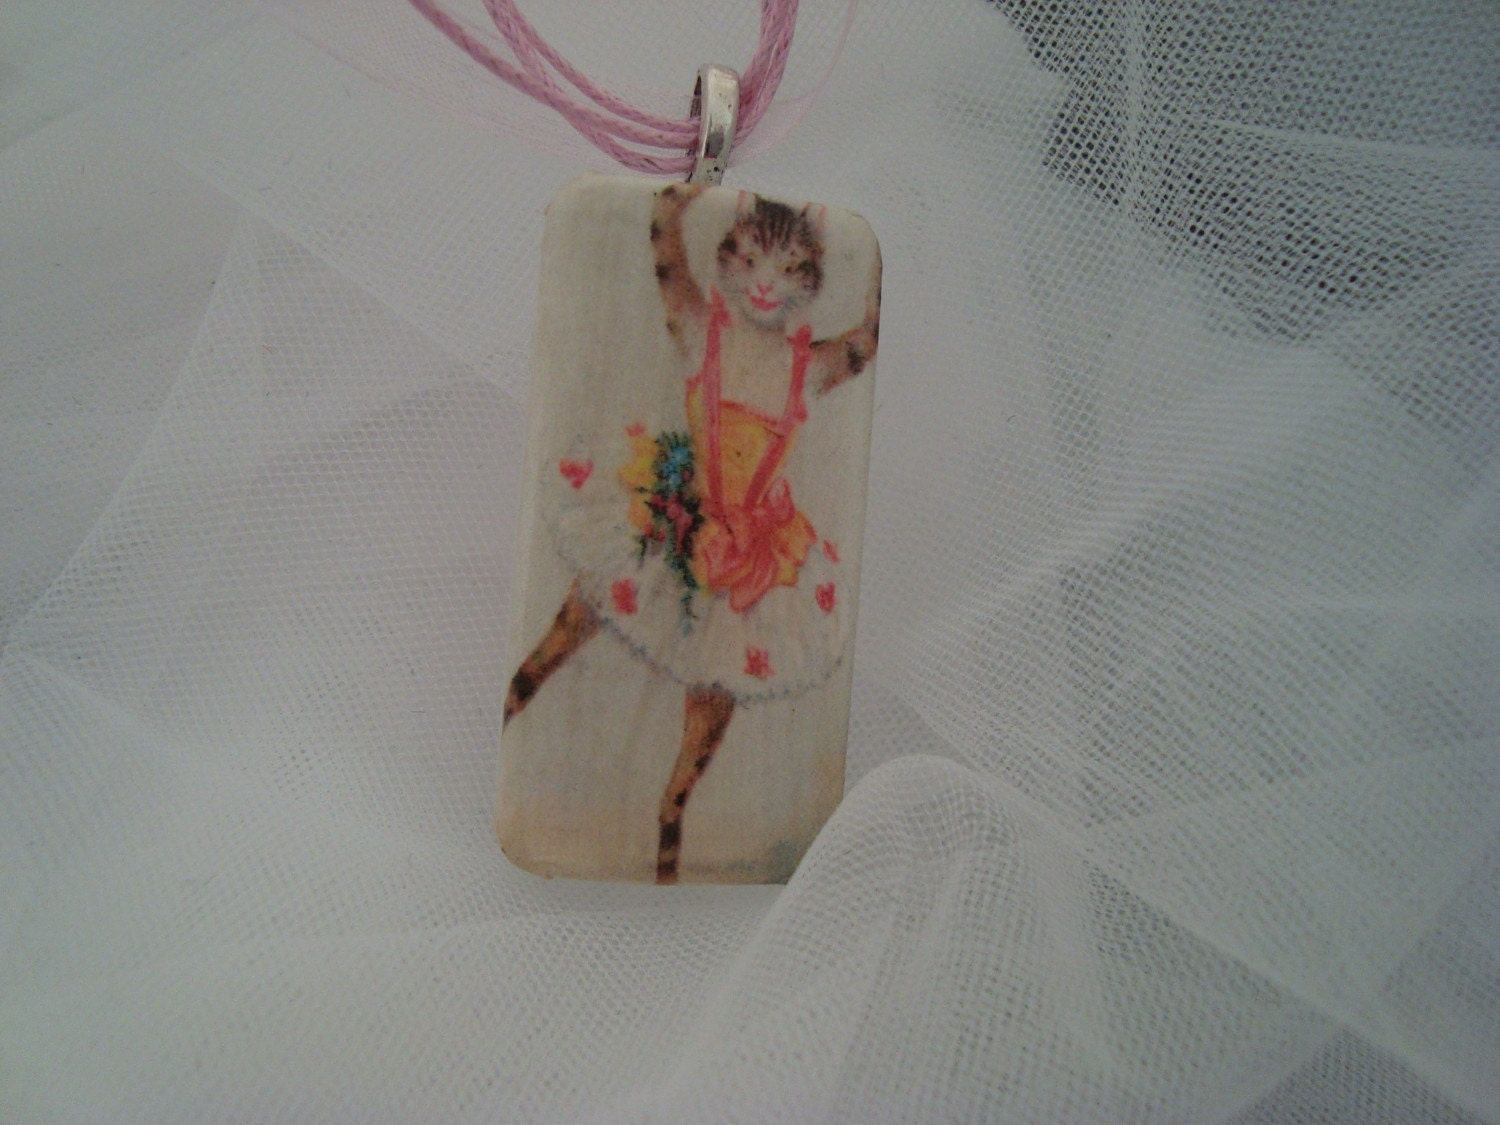 Ballerina Kitty Cat Recyled Domino Tile Pendant WITH FREE RIBBON NECKLACE